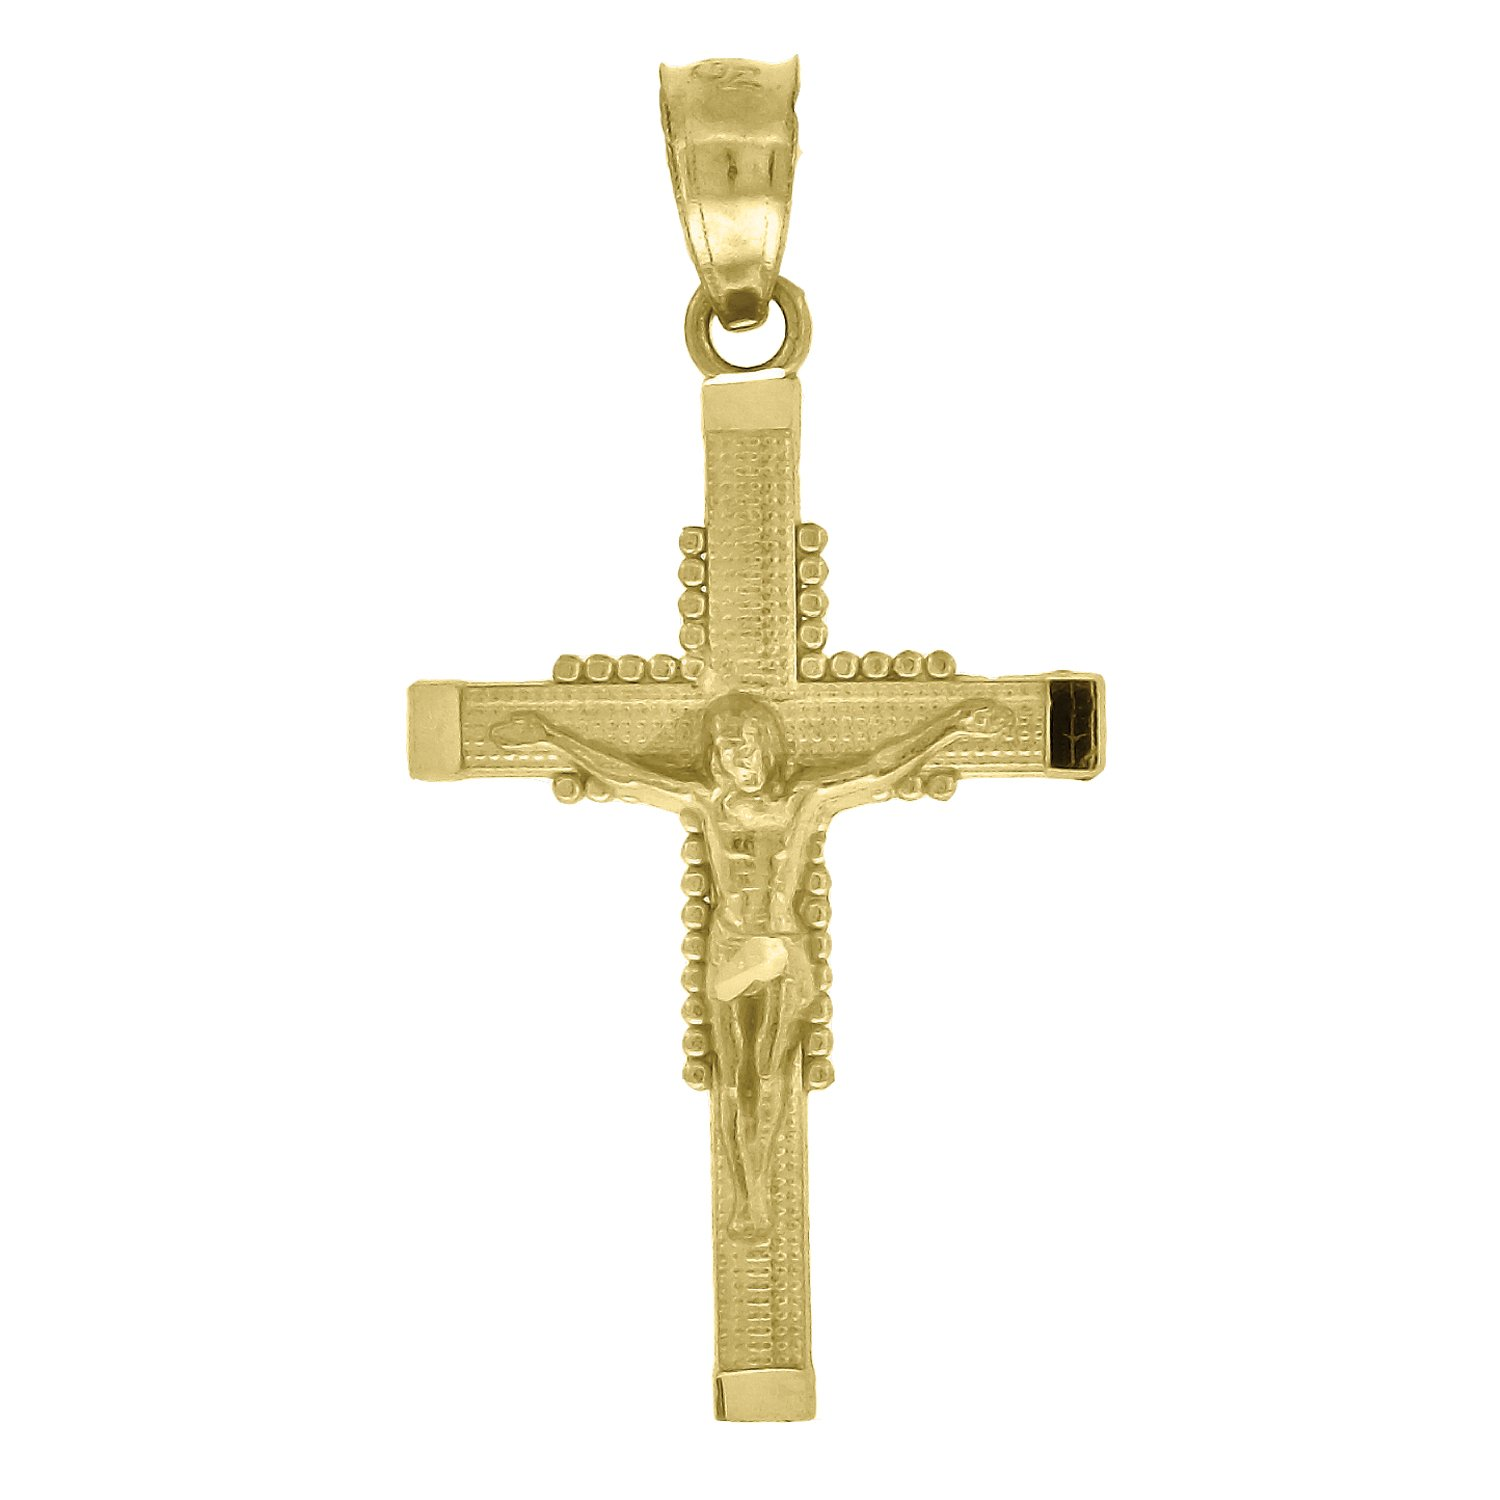 Jewels By Lux 10kt Gold Textured Unisex Cross Crucifix Ht:26.9mm x W:13.9mm Religious Charm Pendant.